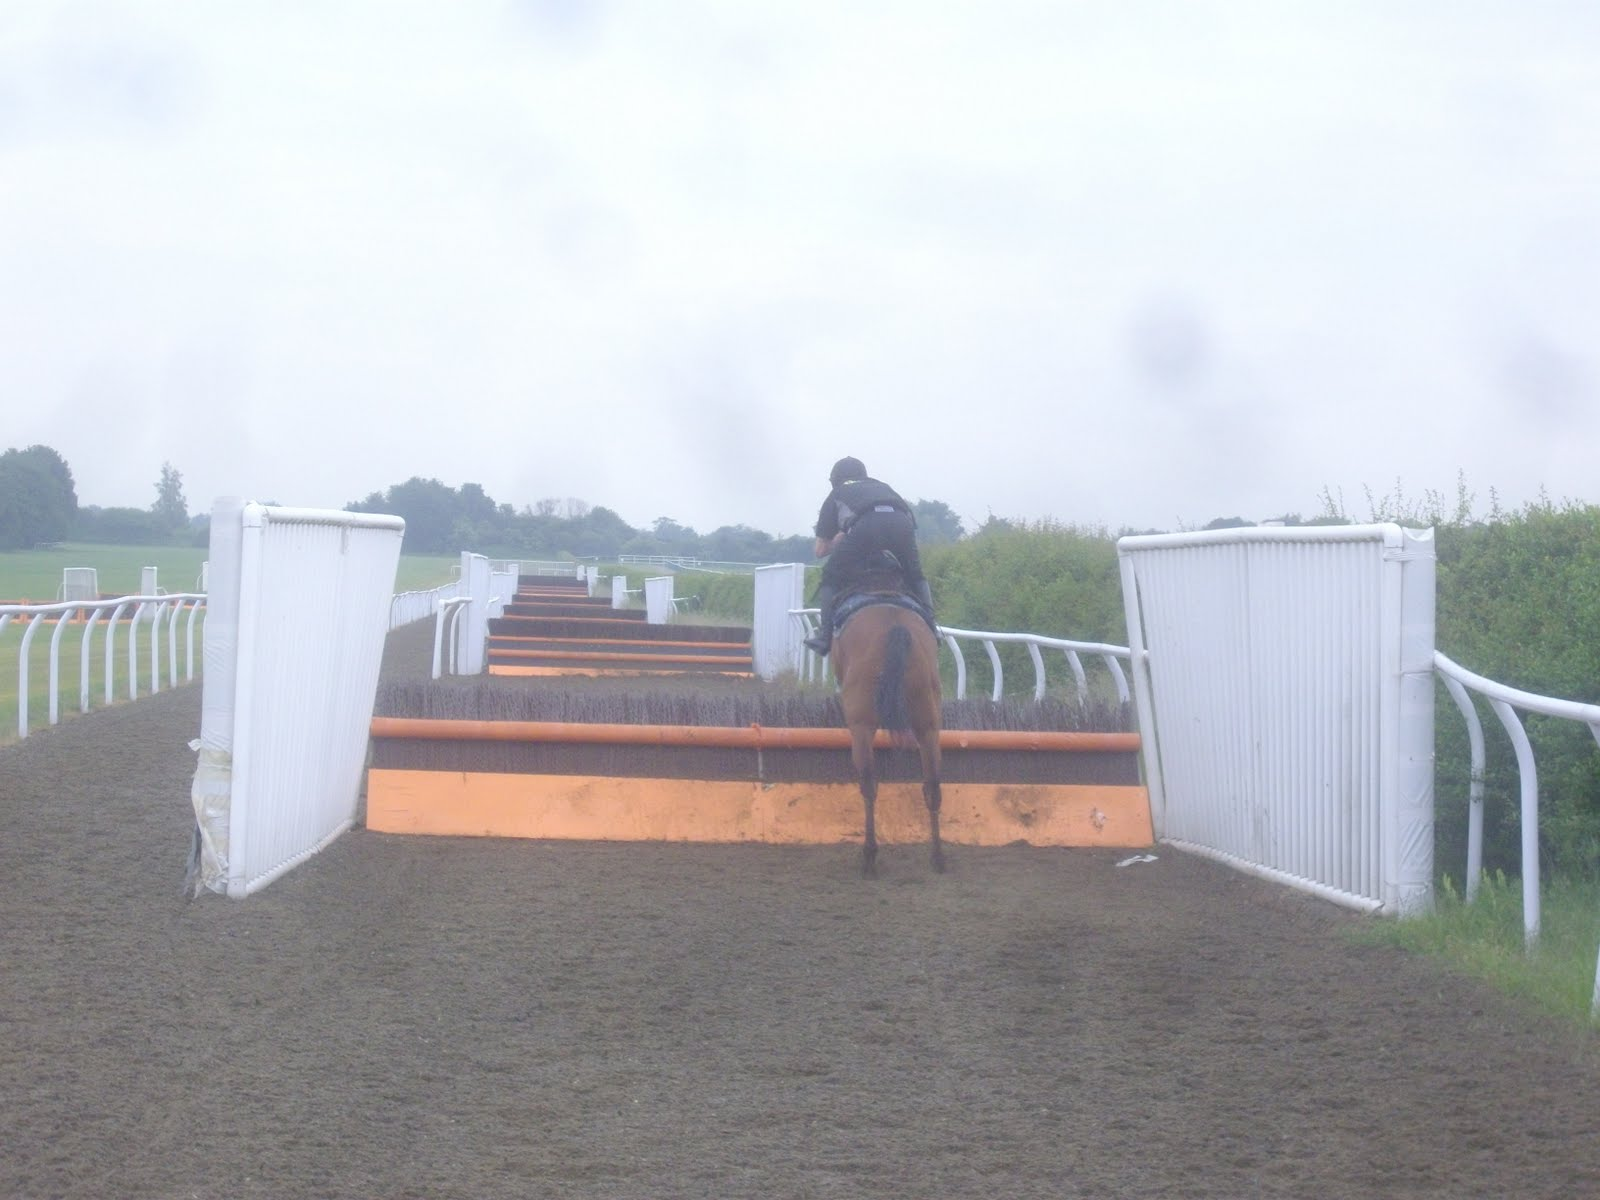 As both our mounts were very well-behaved (I was on my hack Ex Con), ...